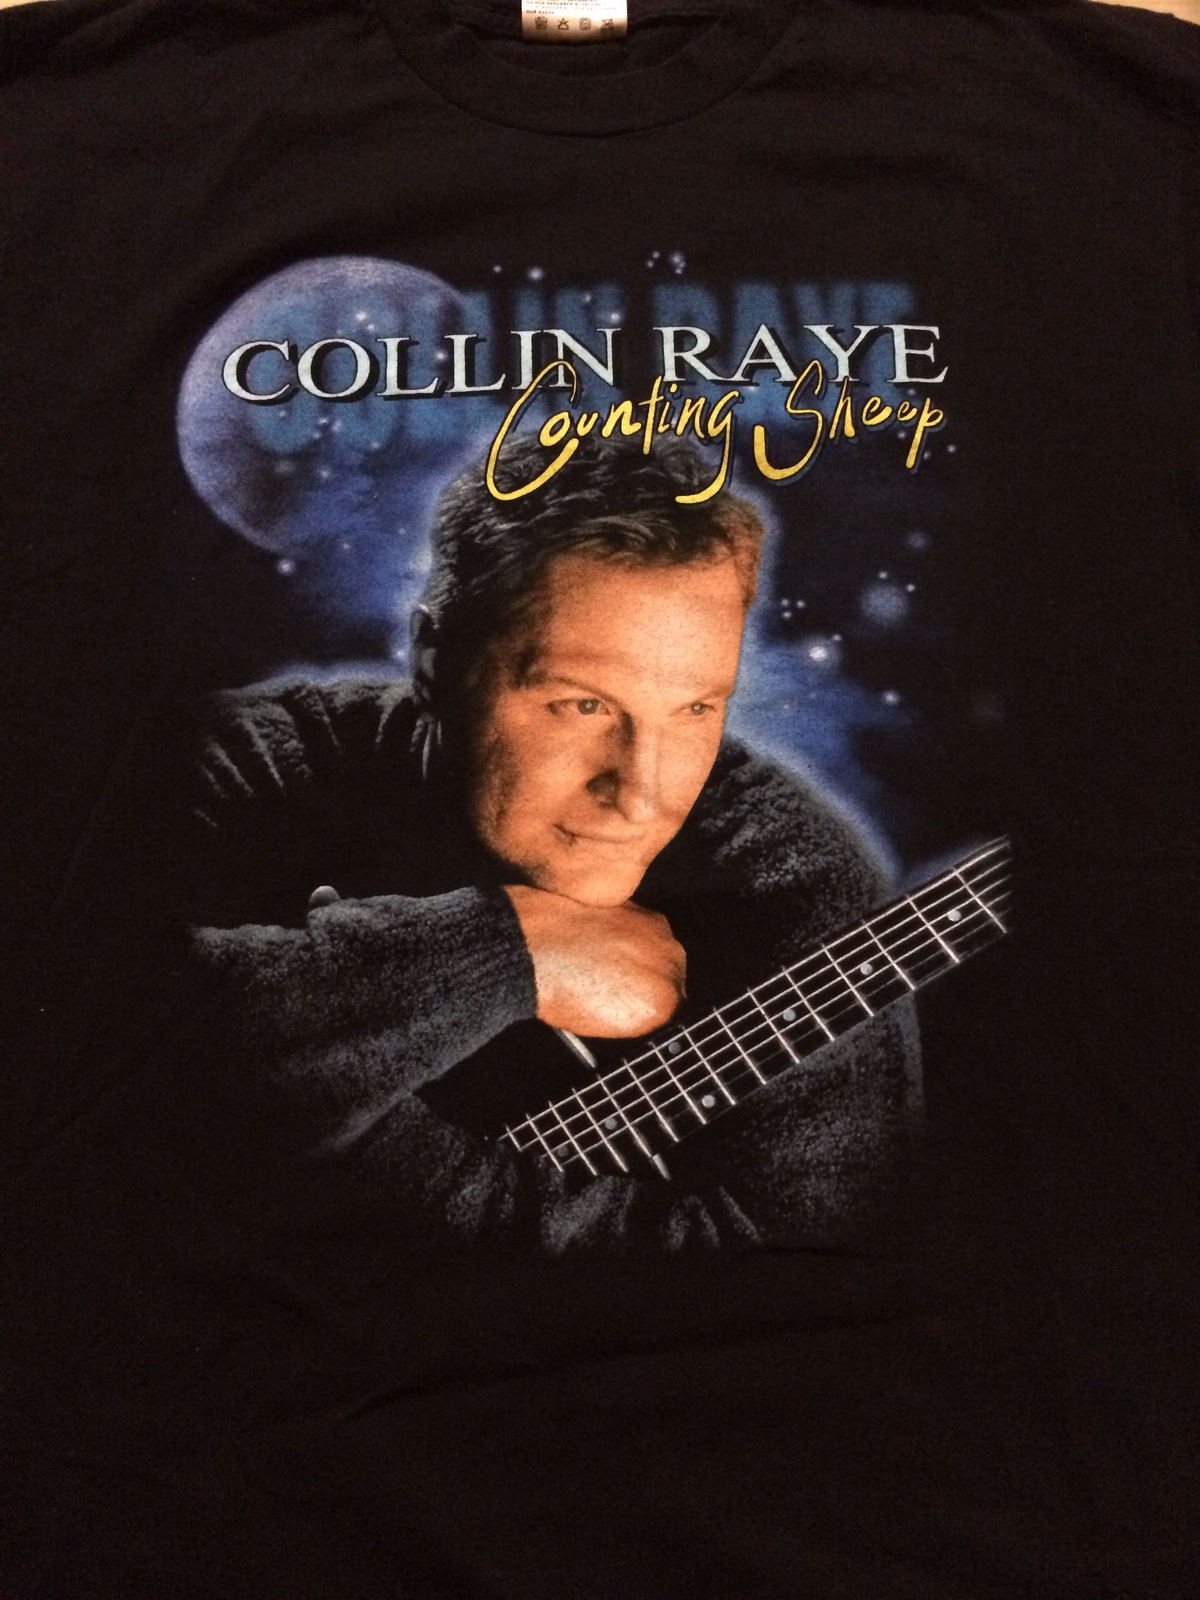 """Collin Raye """" Counting Sheep """" Cool Concert T-Shirt Sz Large  Front & Back!"""